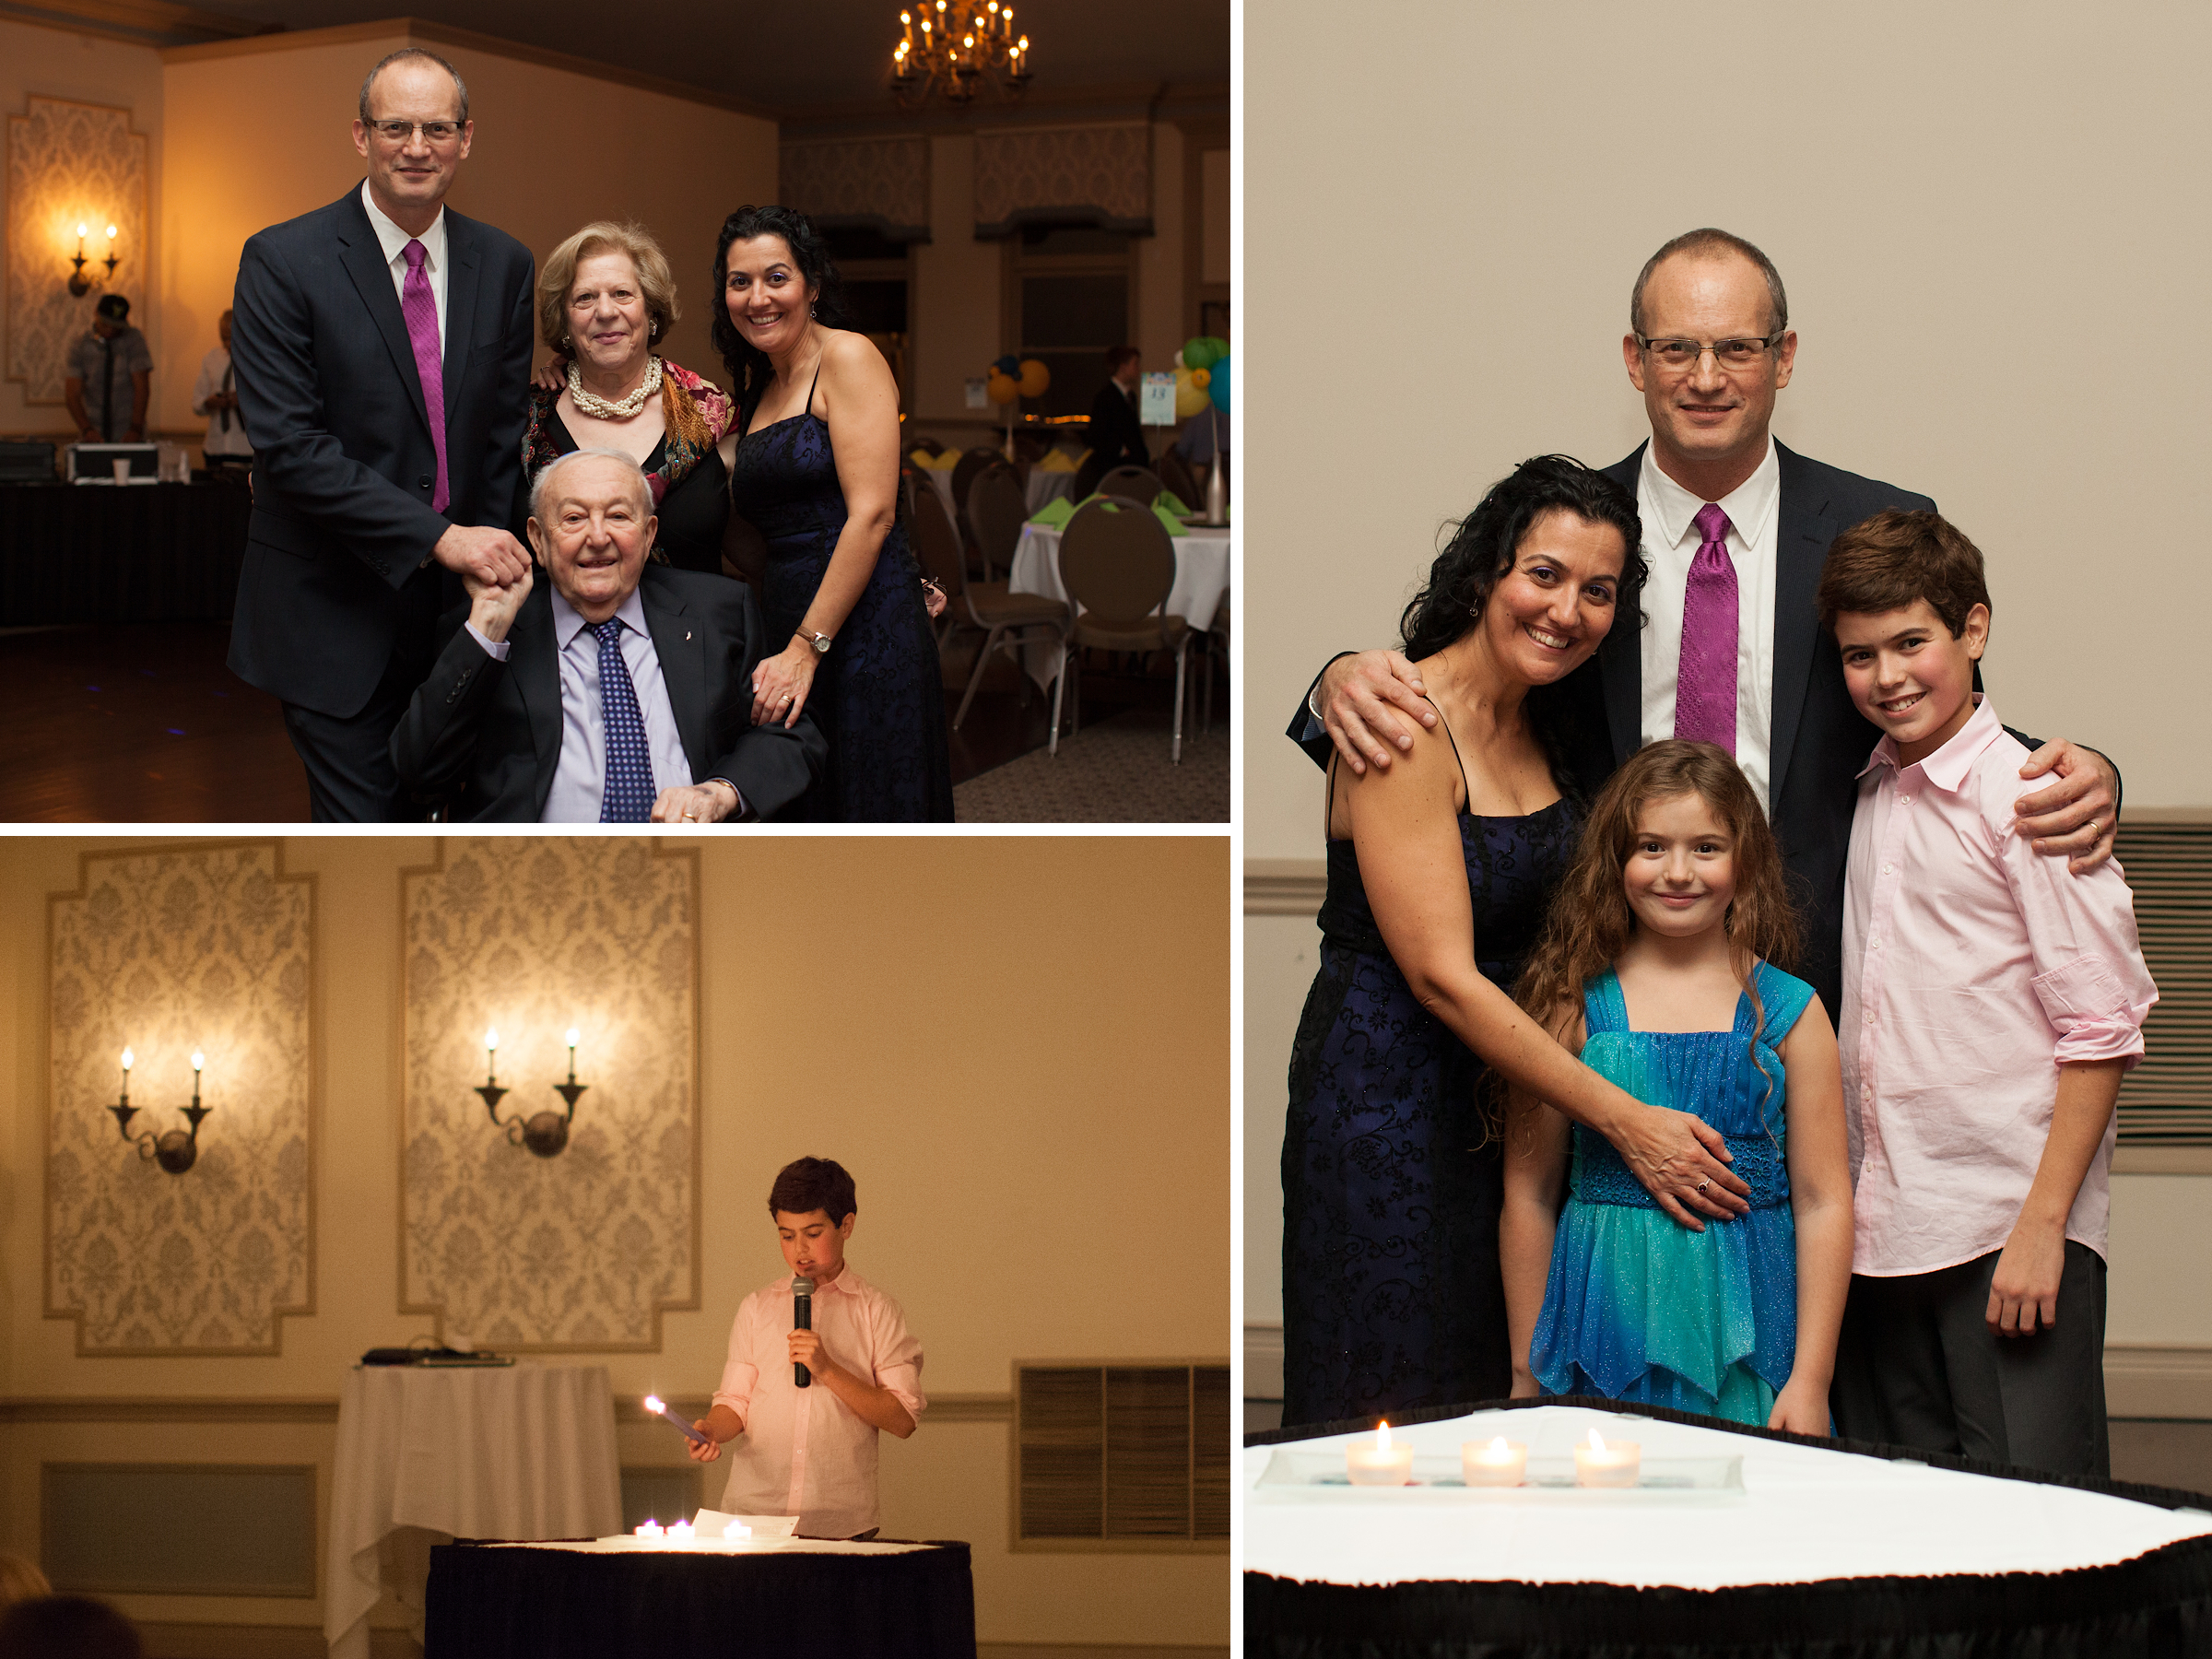 Zach_Bar_Mitzvah_Blog_07